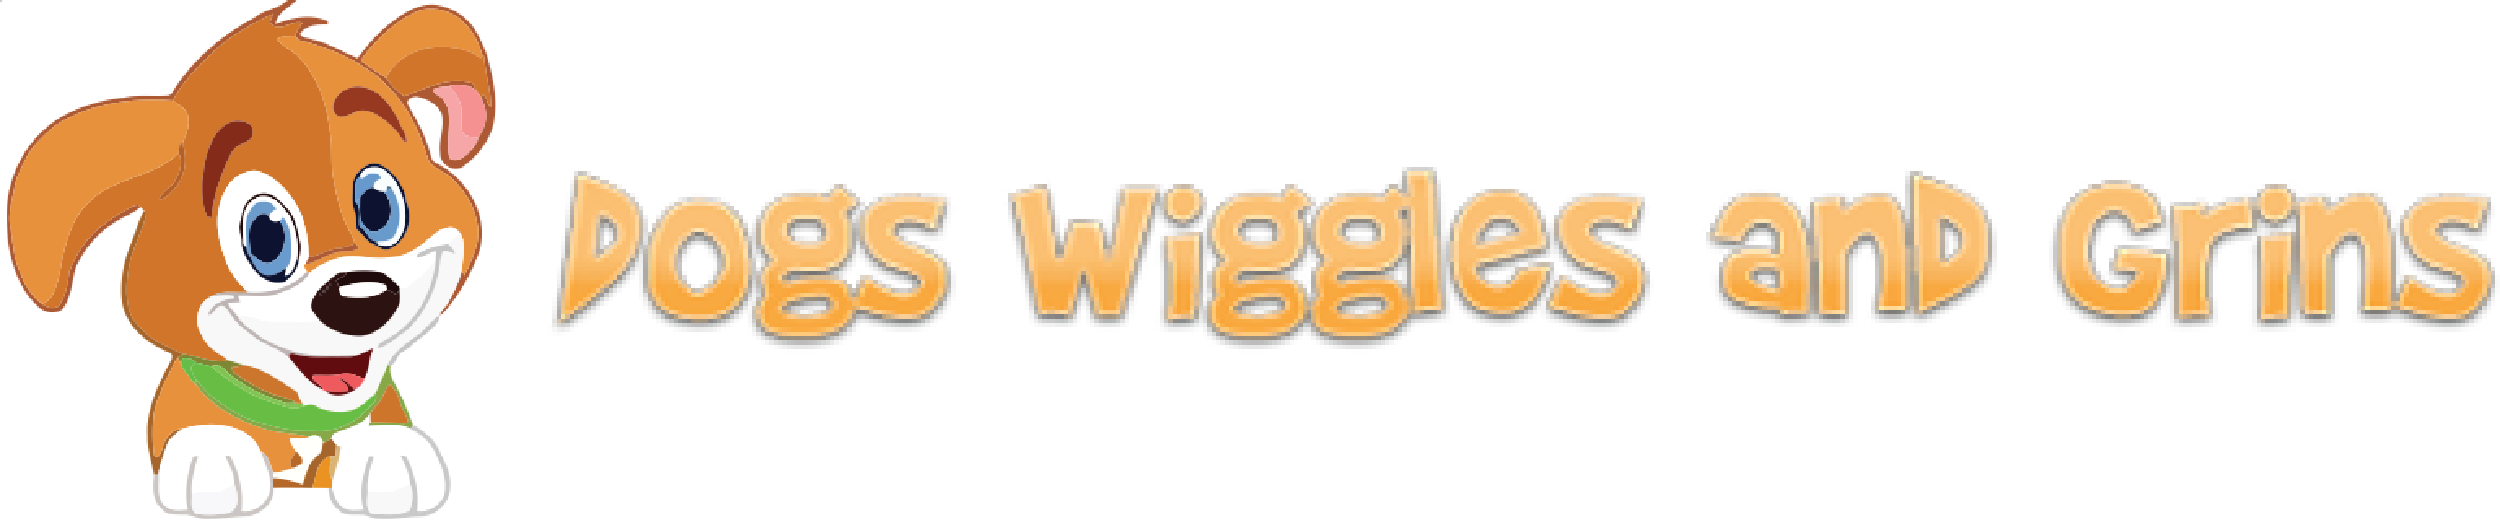 WELCOME TO DOGS WIGGLES AND GRINS